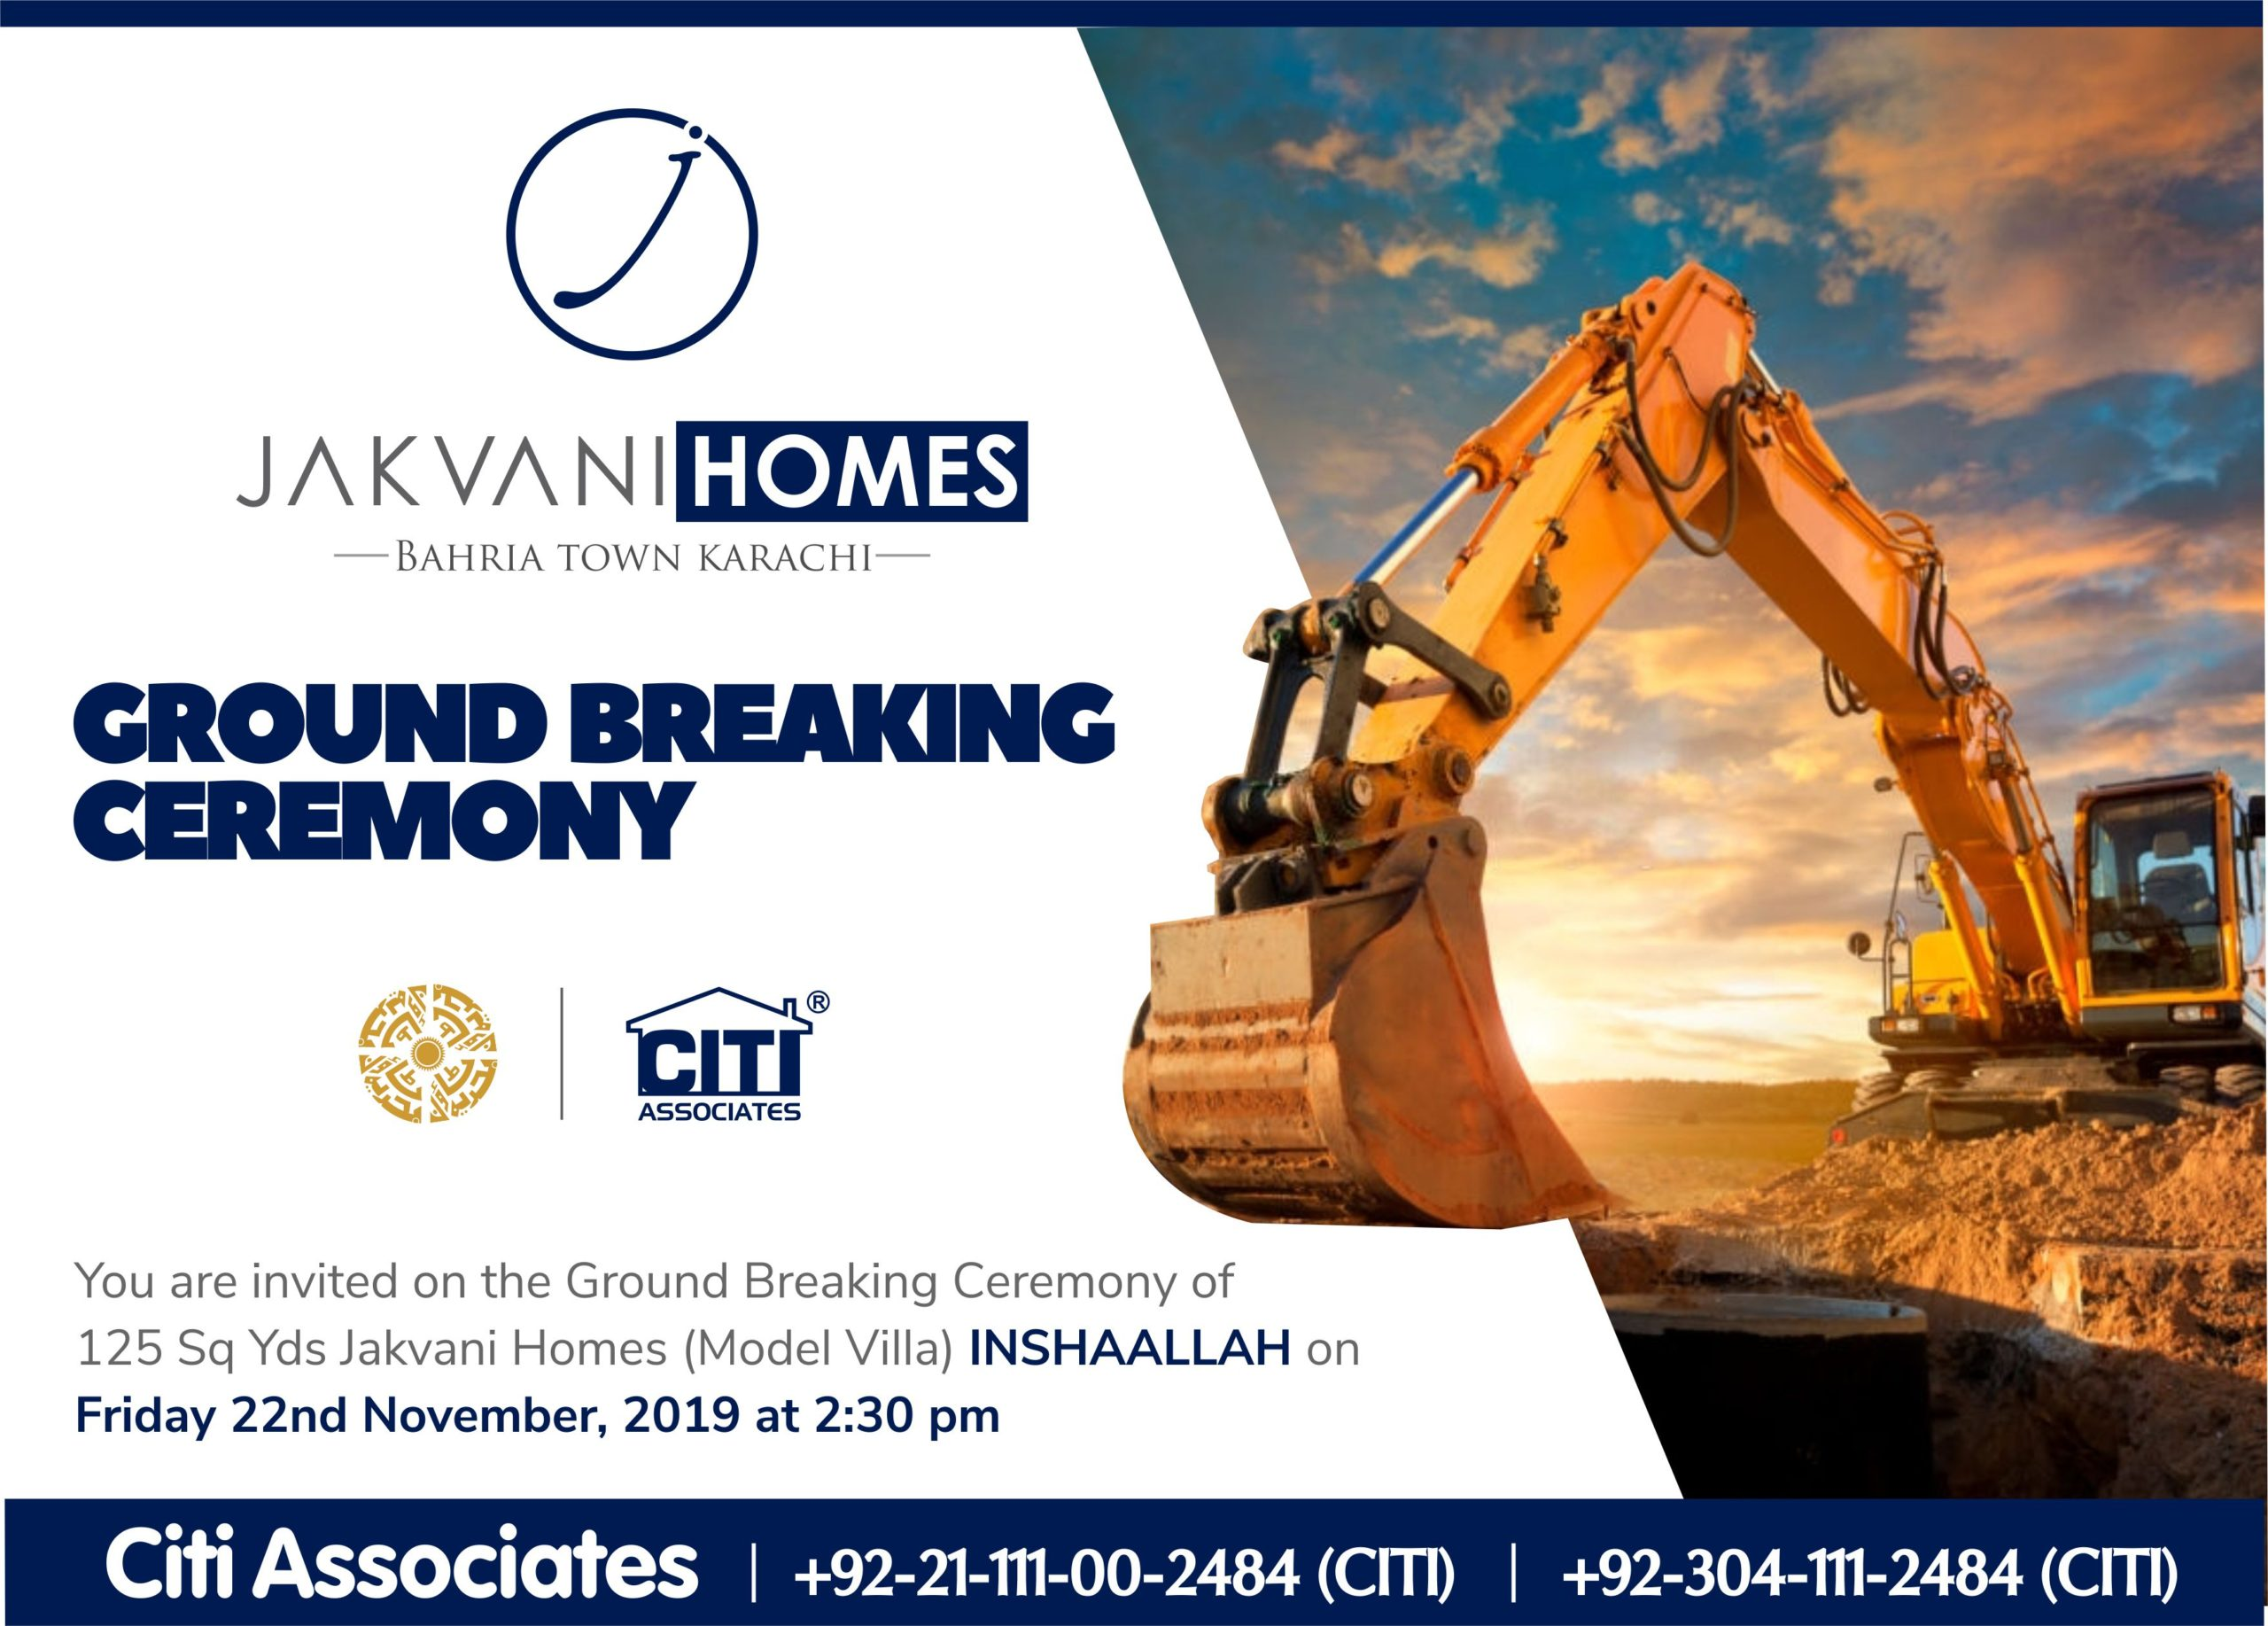 Ground Breaking Ceremony of 'Jakvani Homes' | Bahria Town Karachi